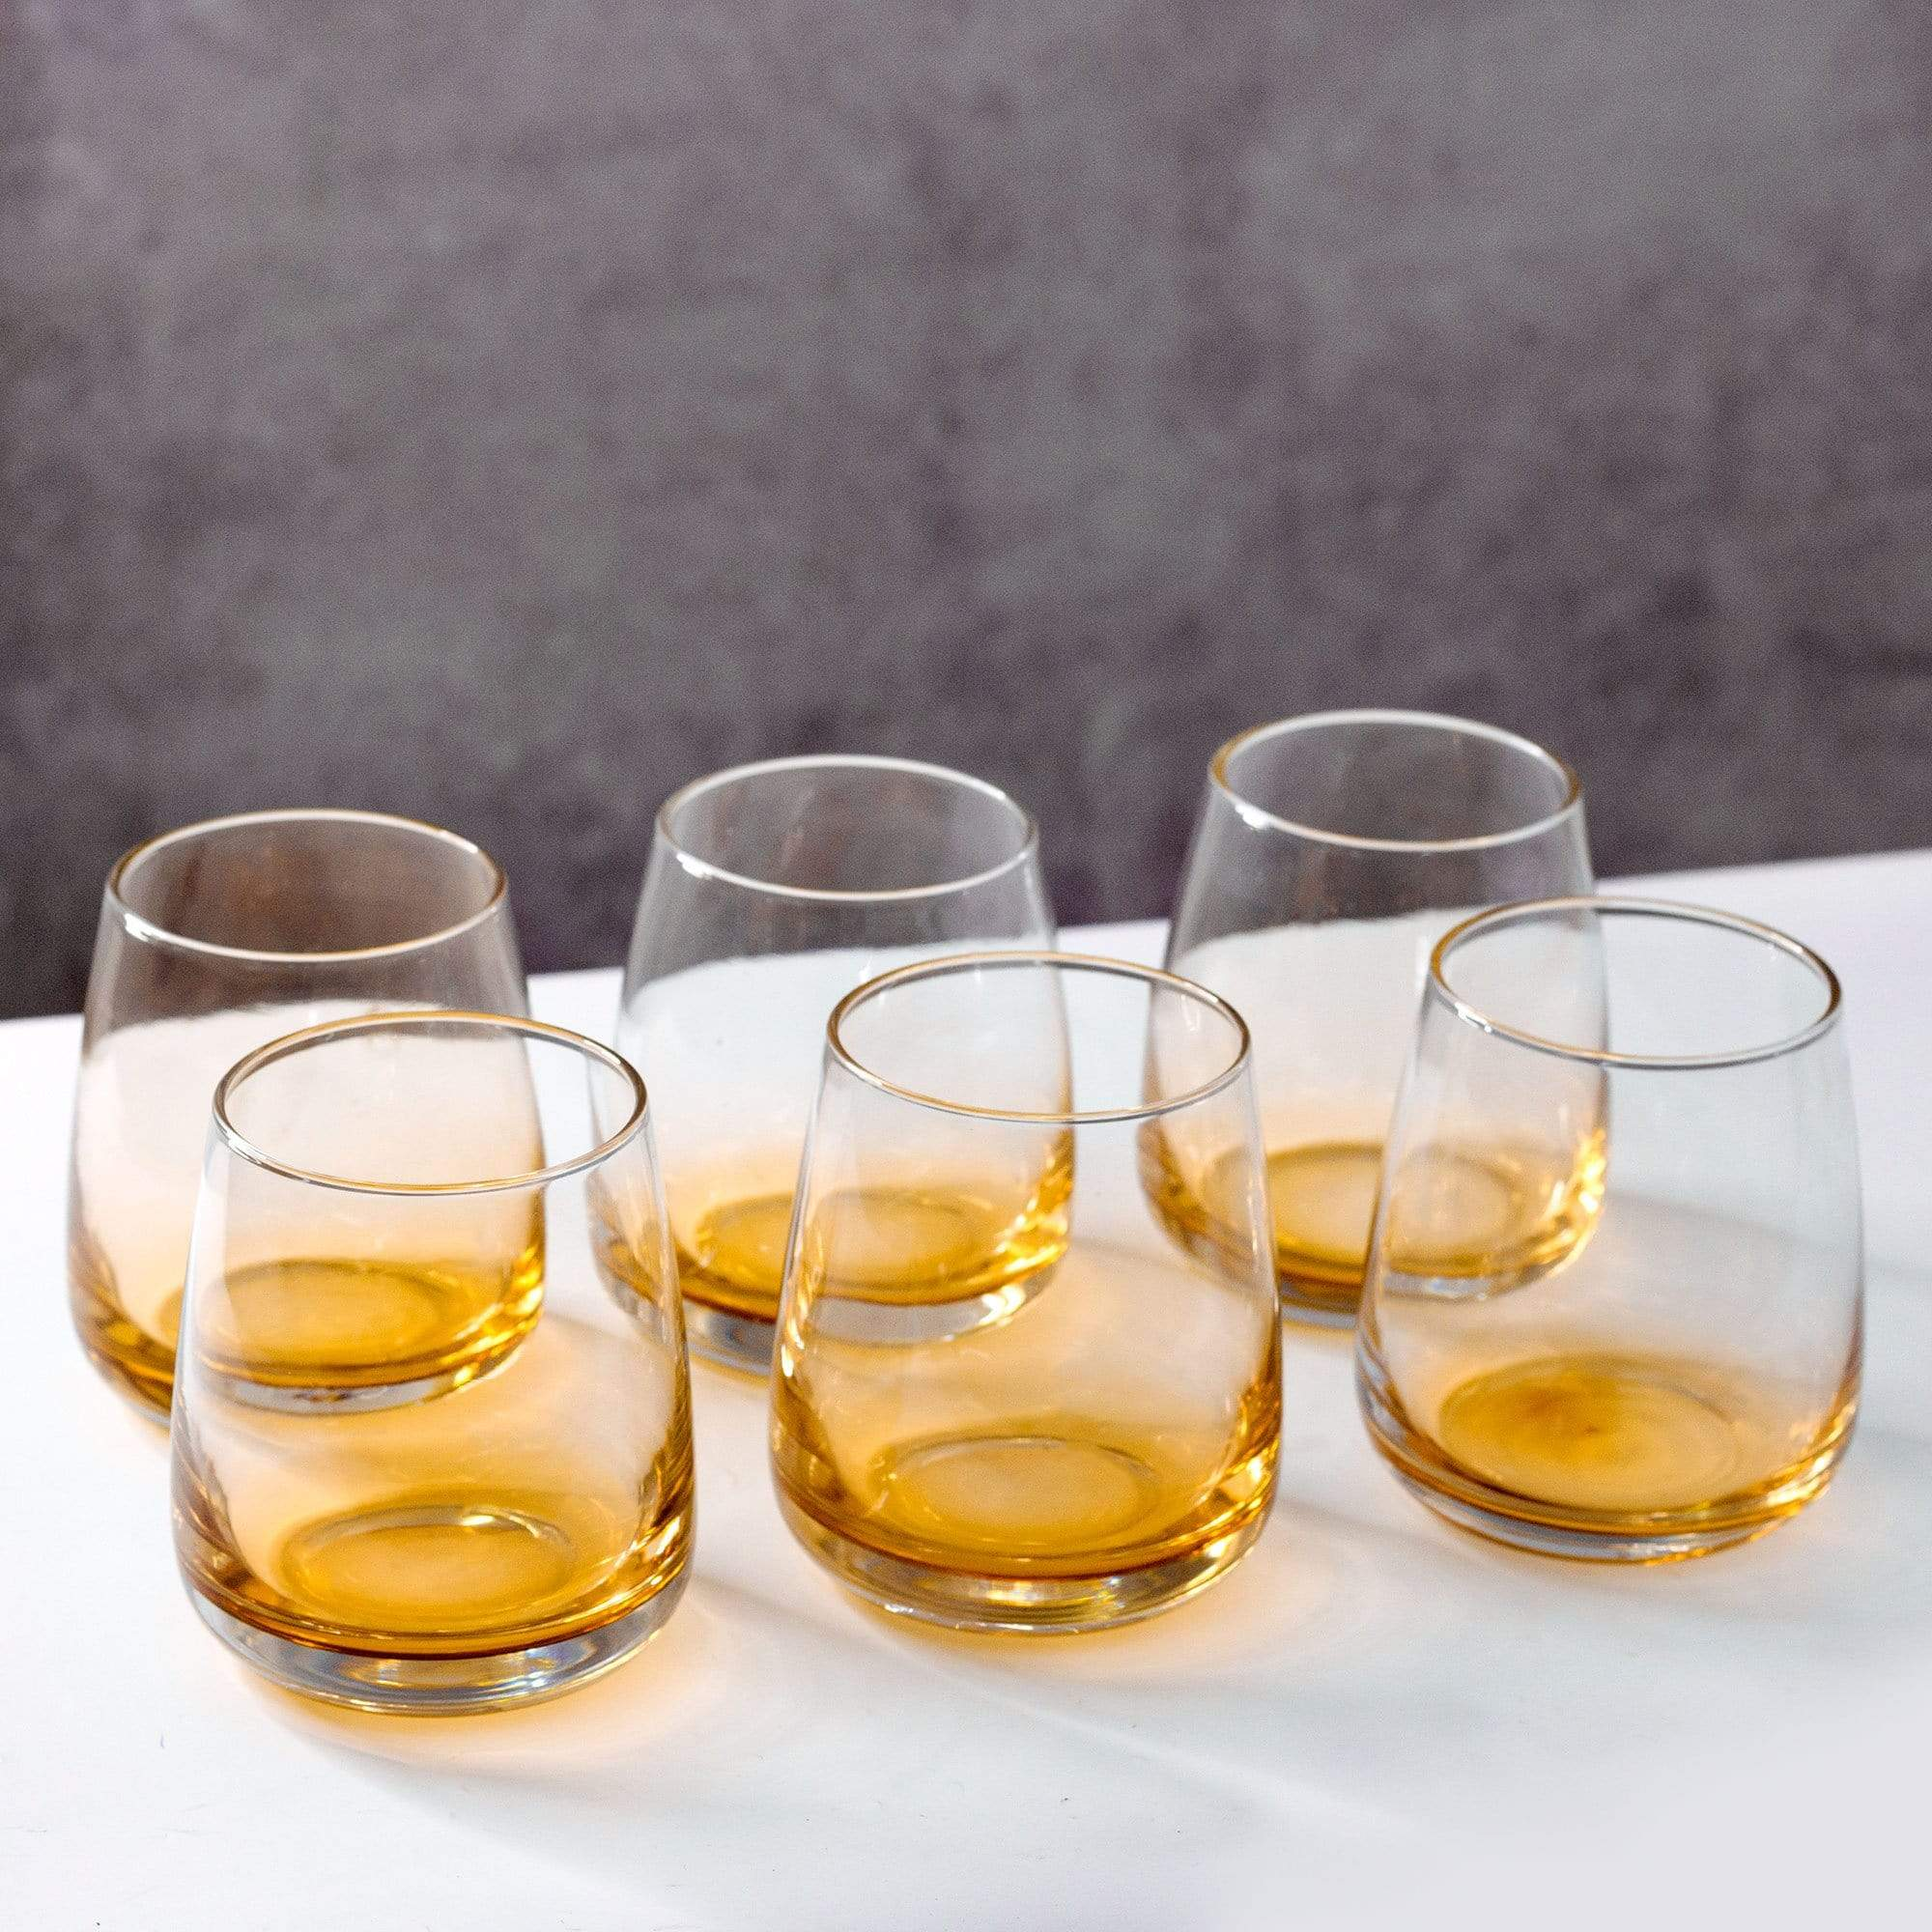 Gold Hue Whisky Glasses (Set of 6)